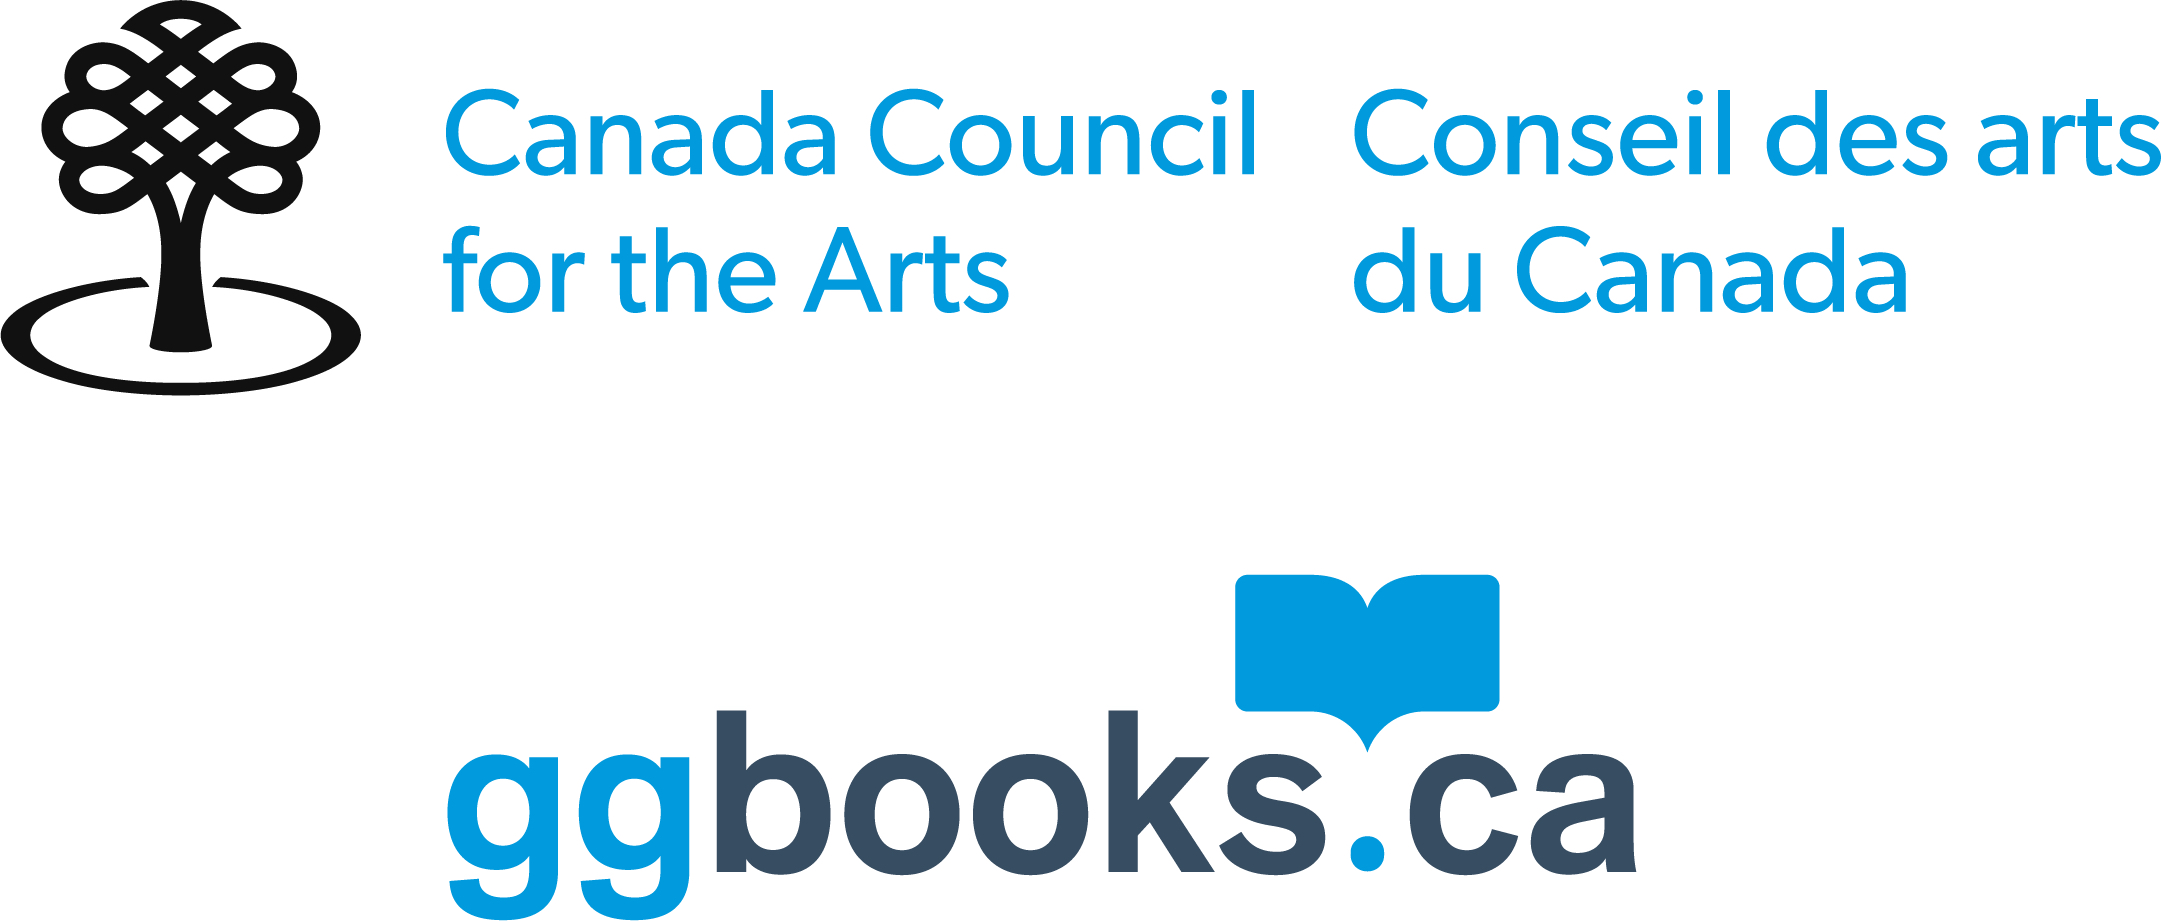 GG Books / Canada Council logo